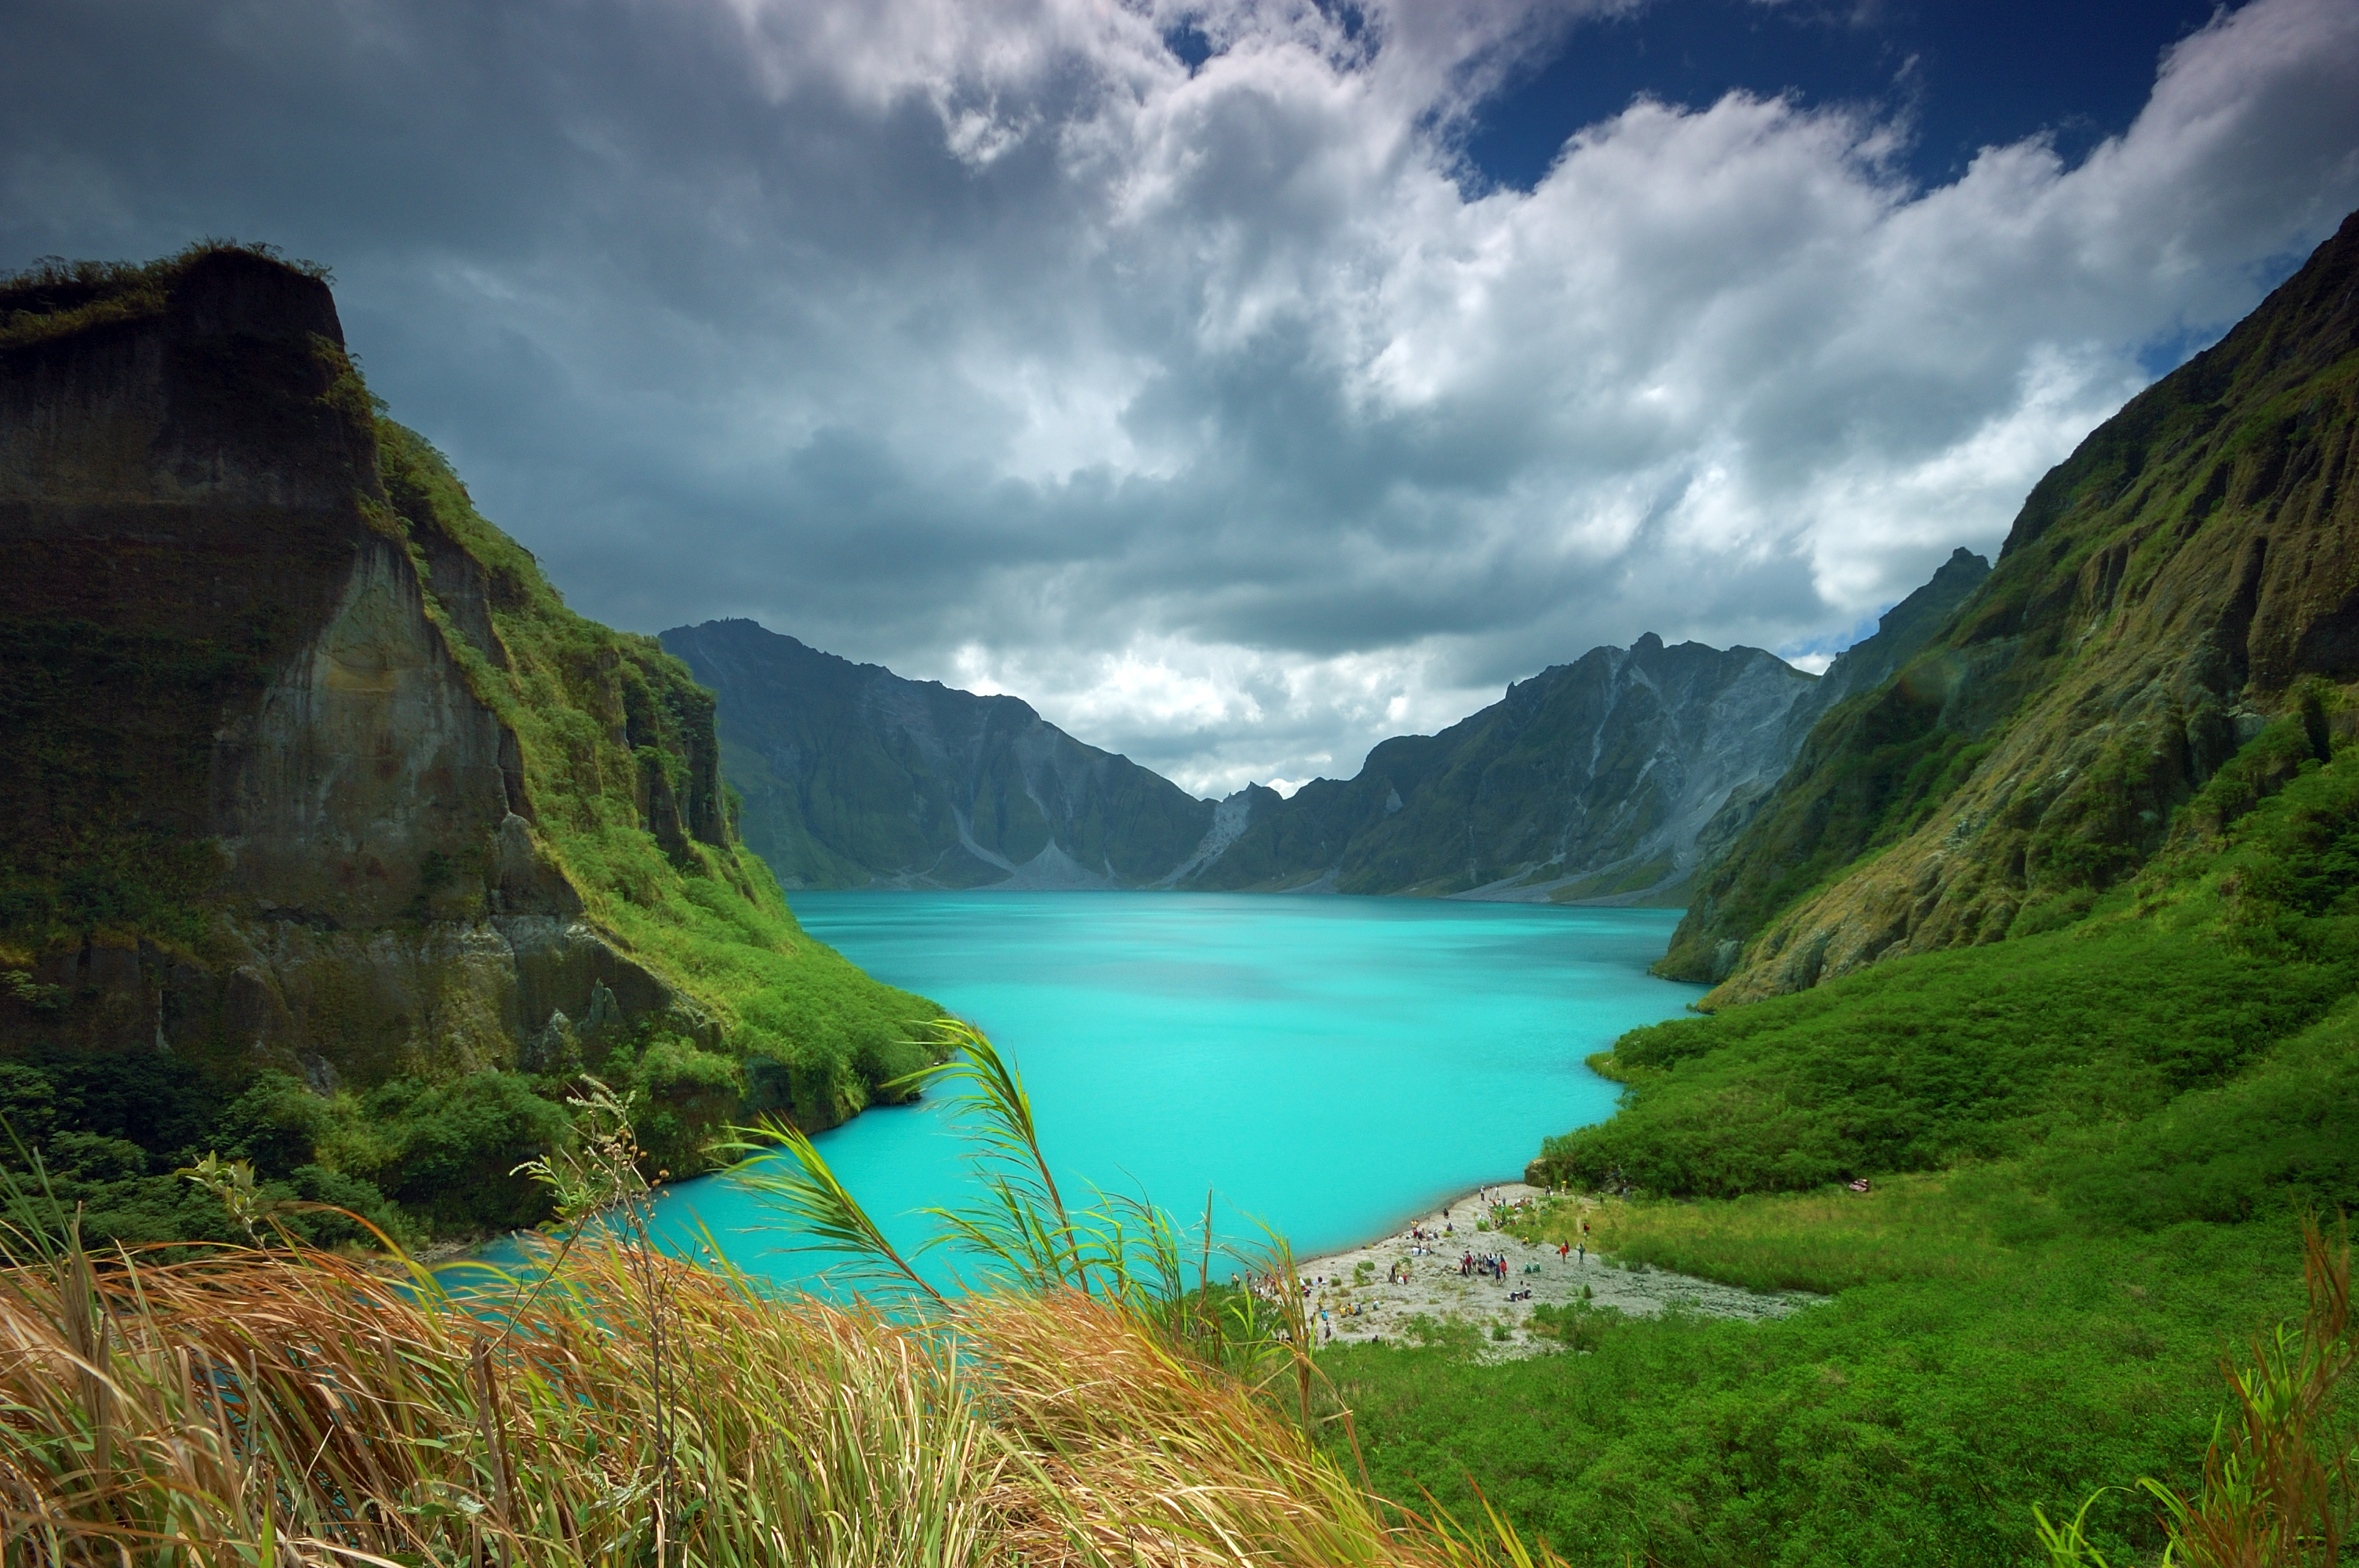 Blue waters in Mt. Pinatubo Crater Lake